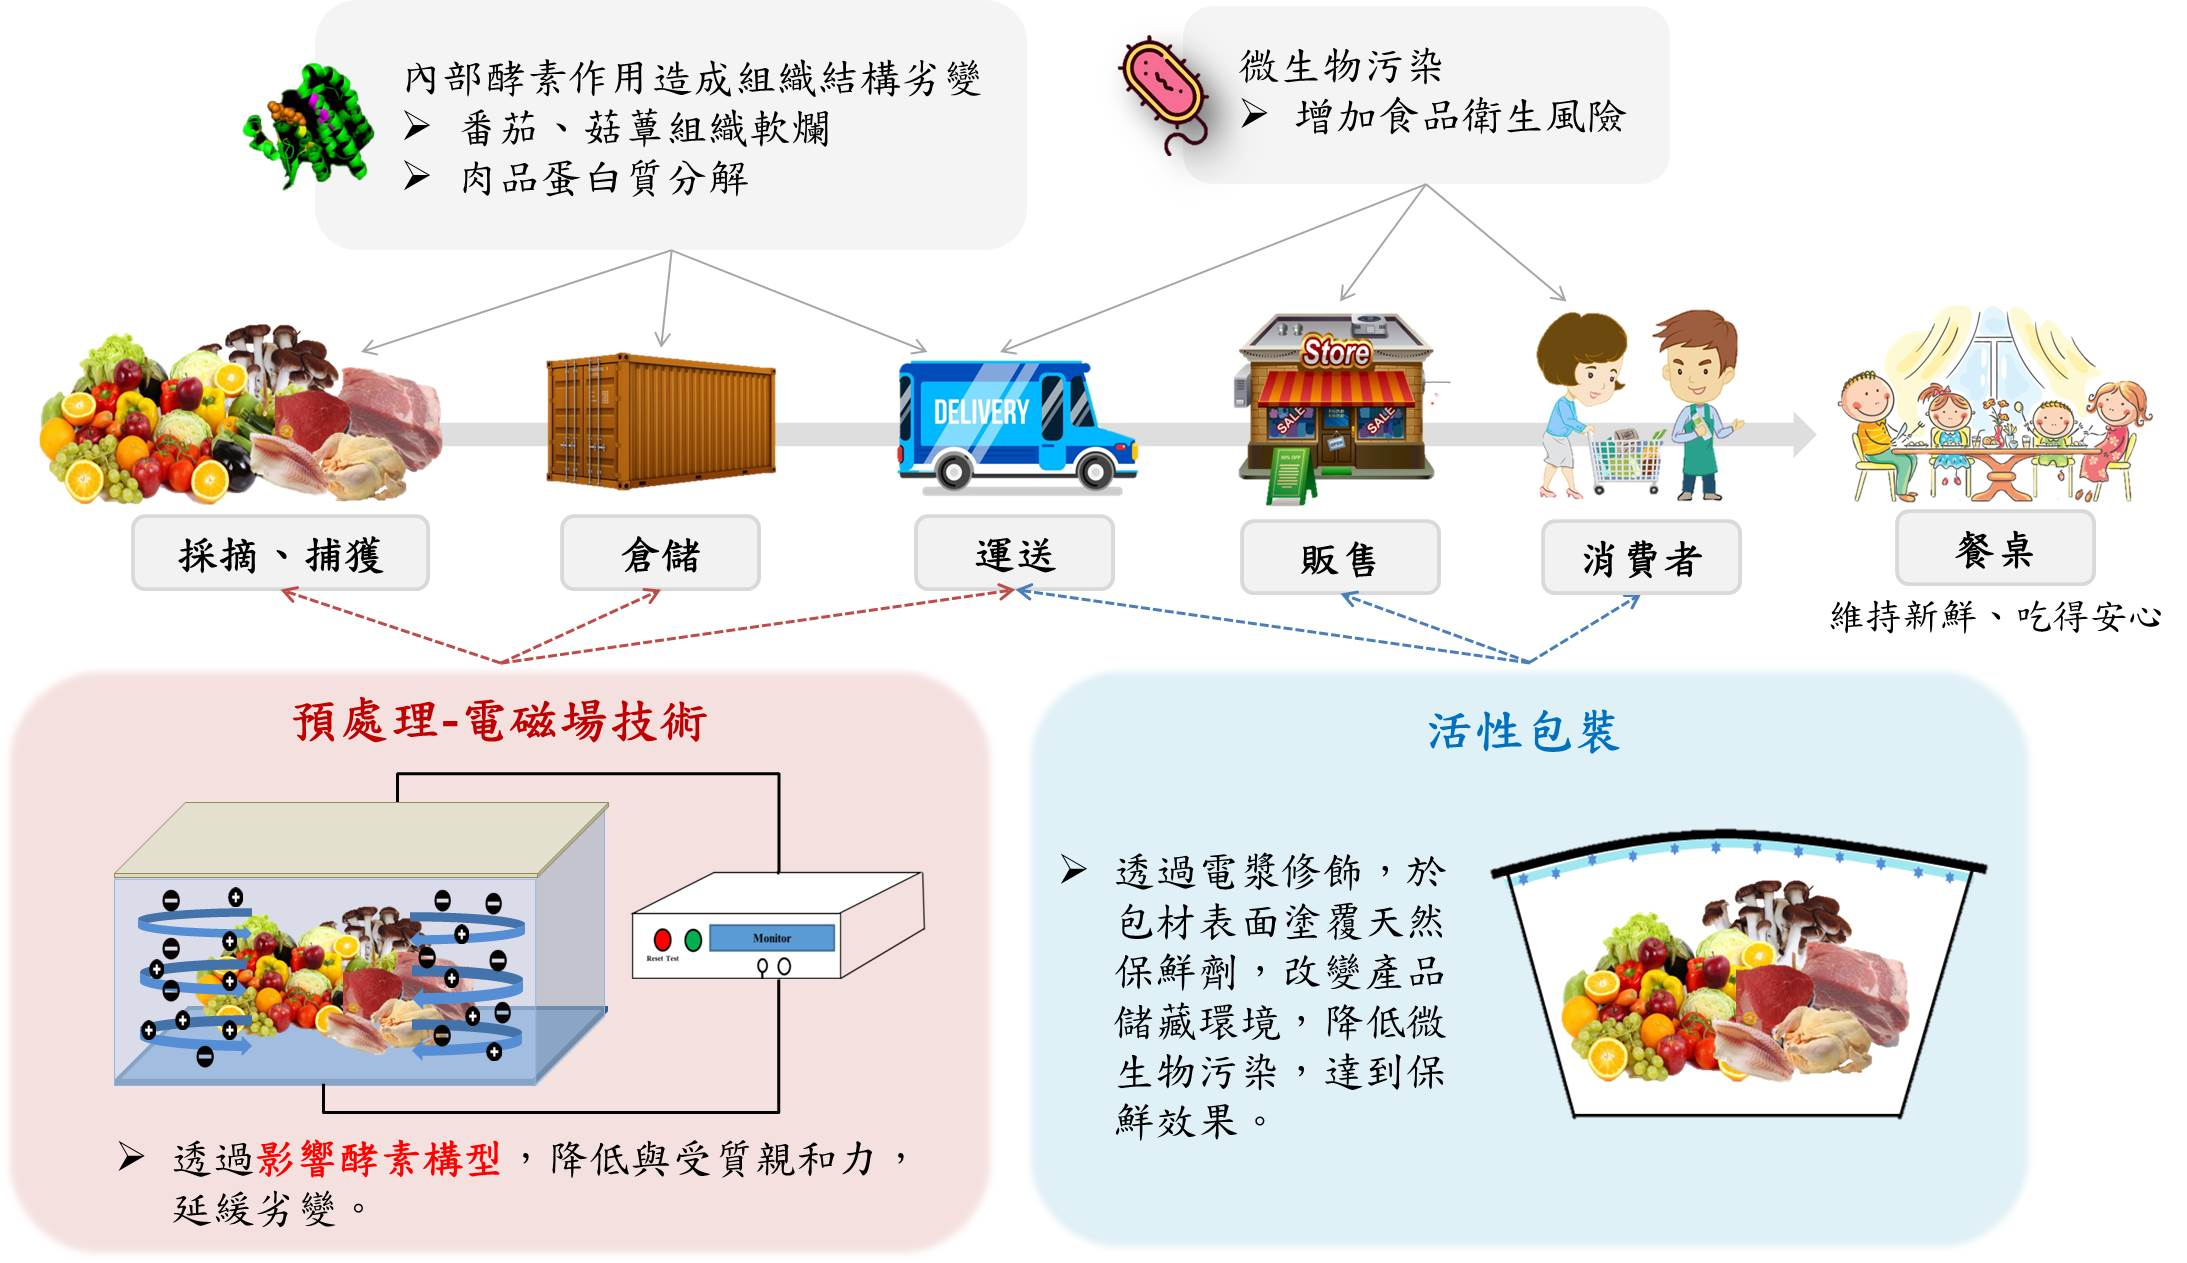 Electromagnetic field technology combined with active packaging application for food preservation